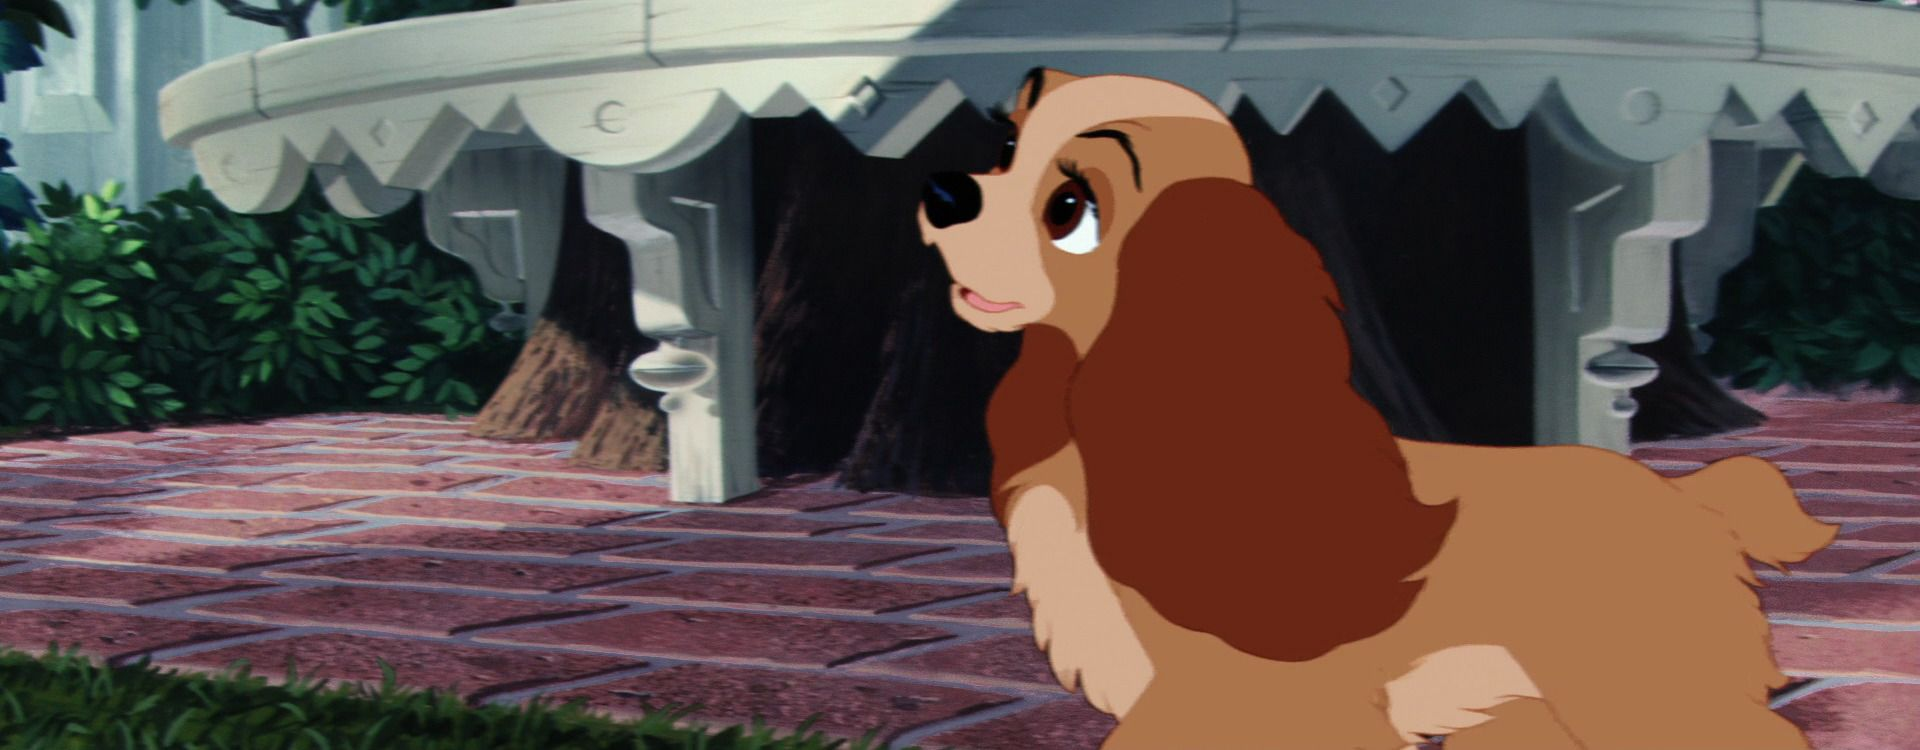 Lady And The Tramp 1955 Disney Screencaps Lady And The Tramp Disney Ladies Disney